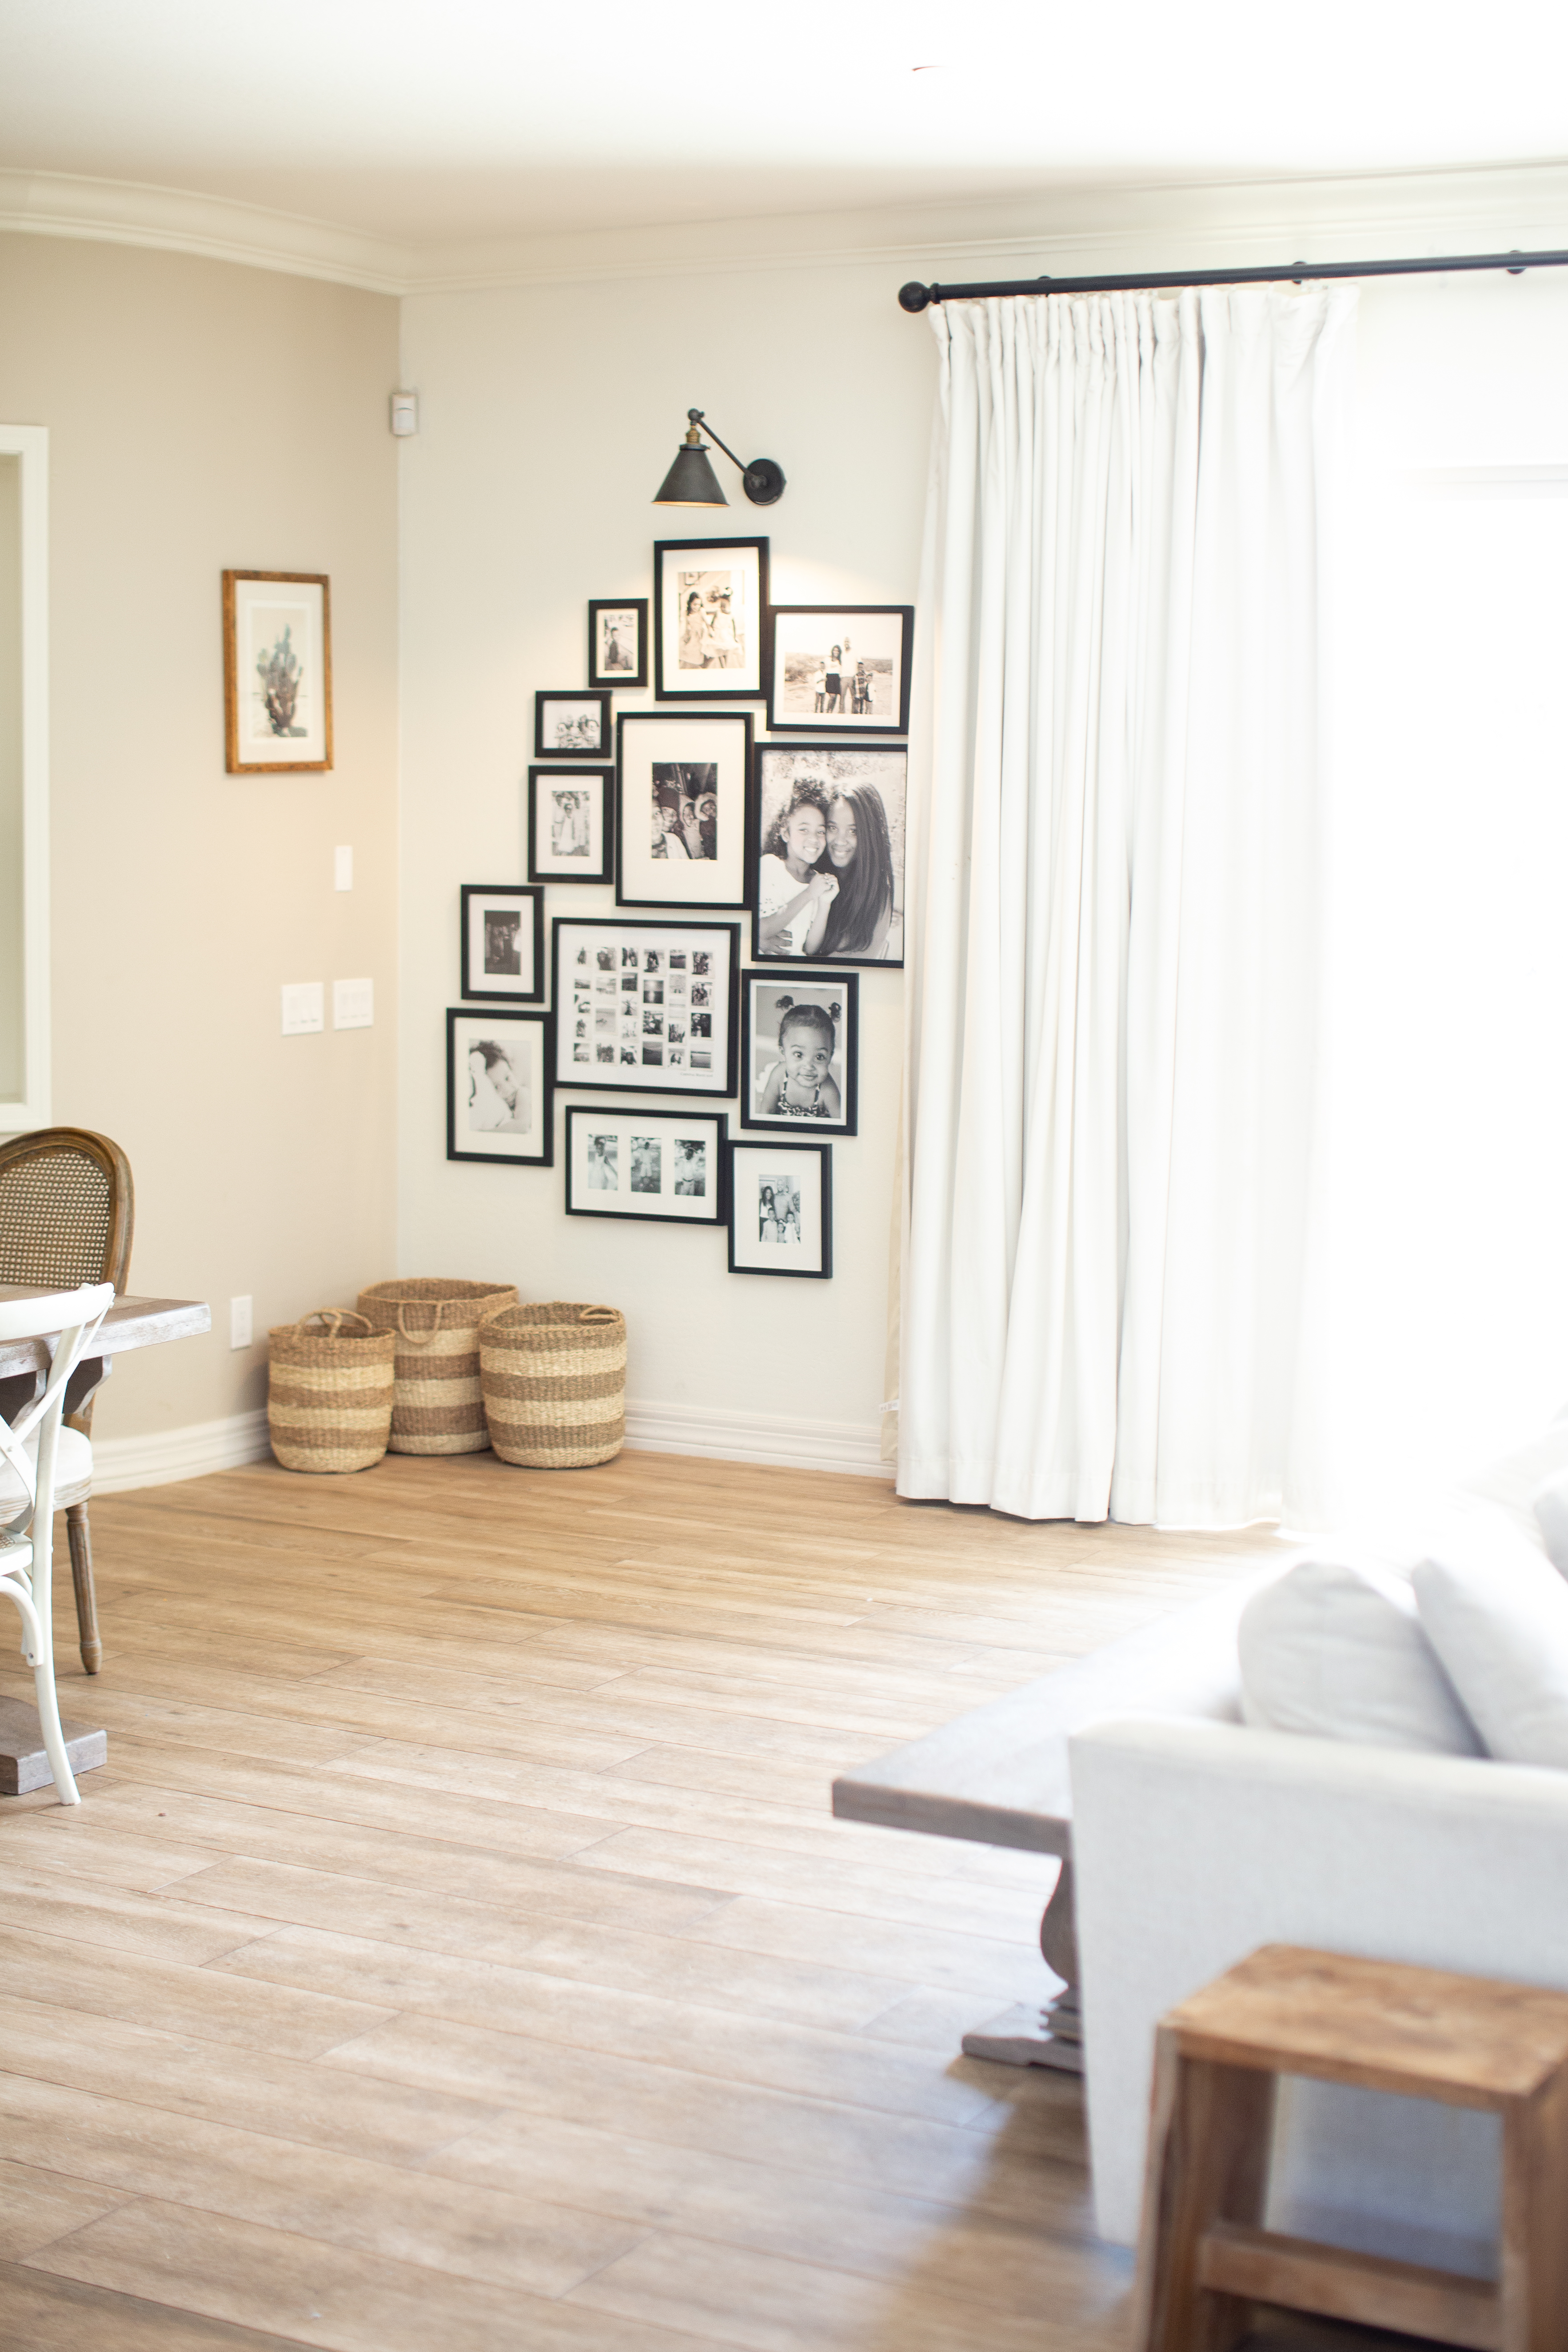 Adding Art and Photography to your family room